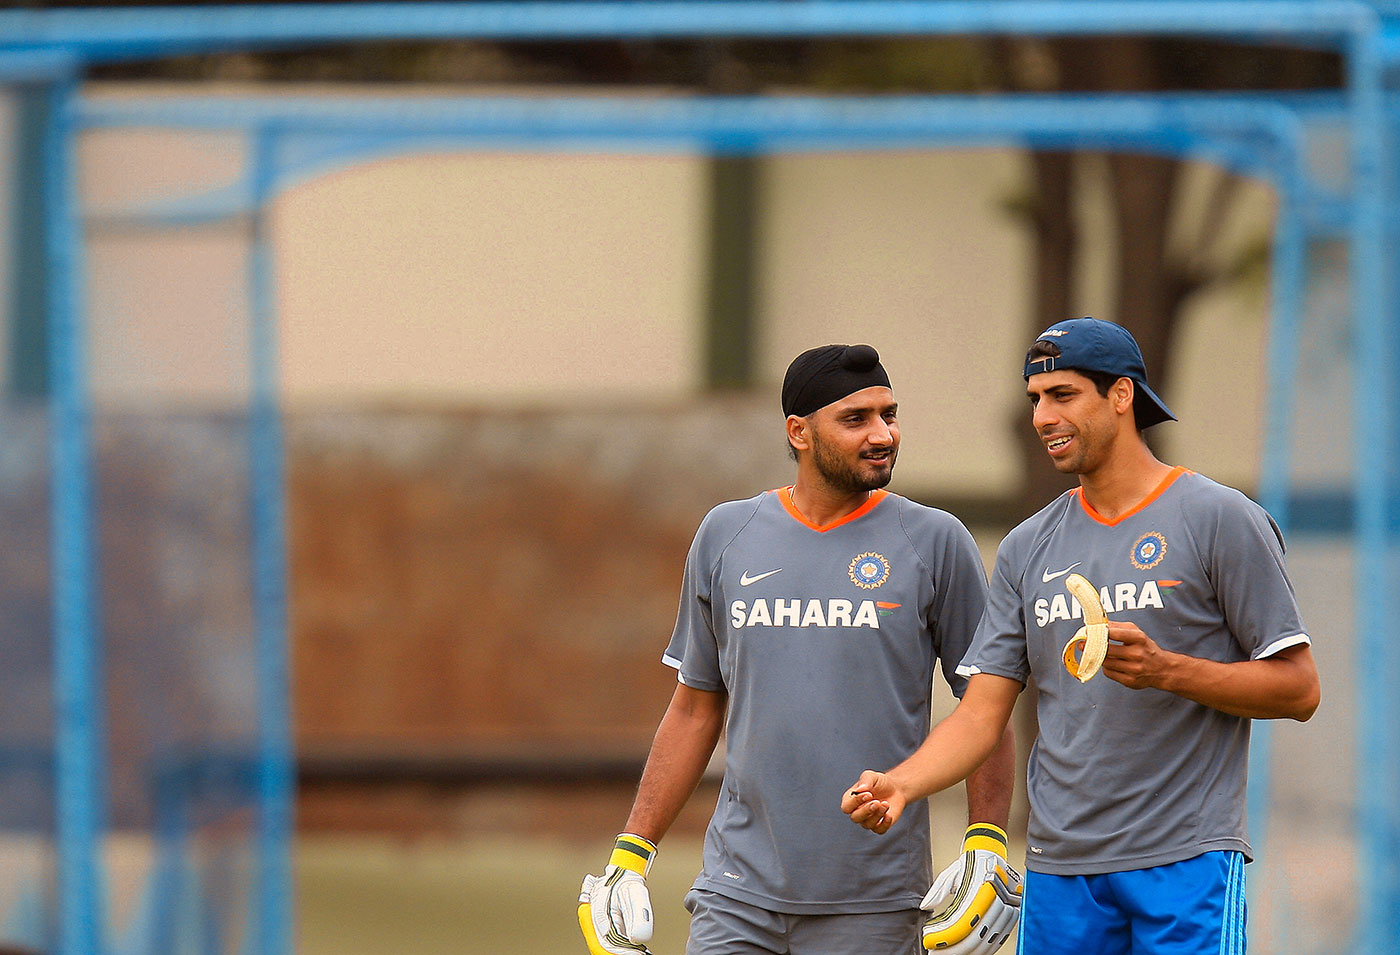 Just my cup of tea: Ashish Nehra hung around for 39 minutes for his 9 in Bulawayo